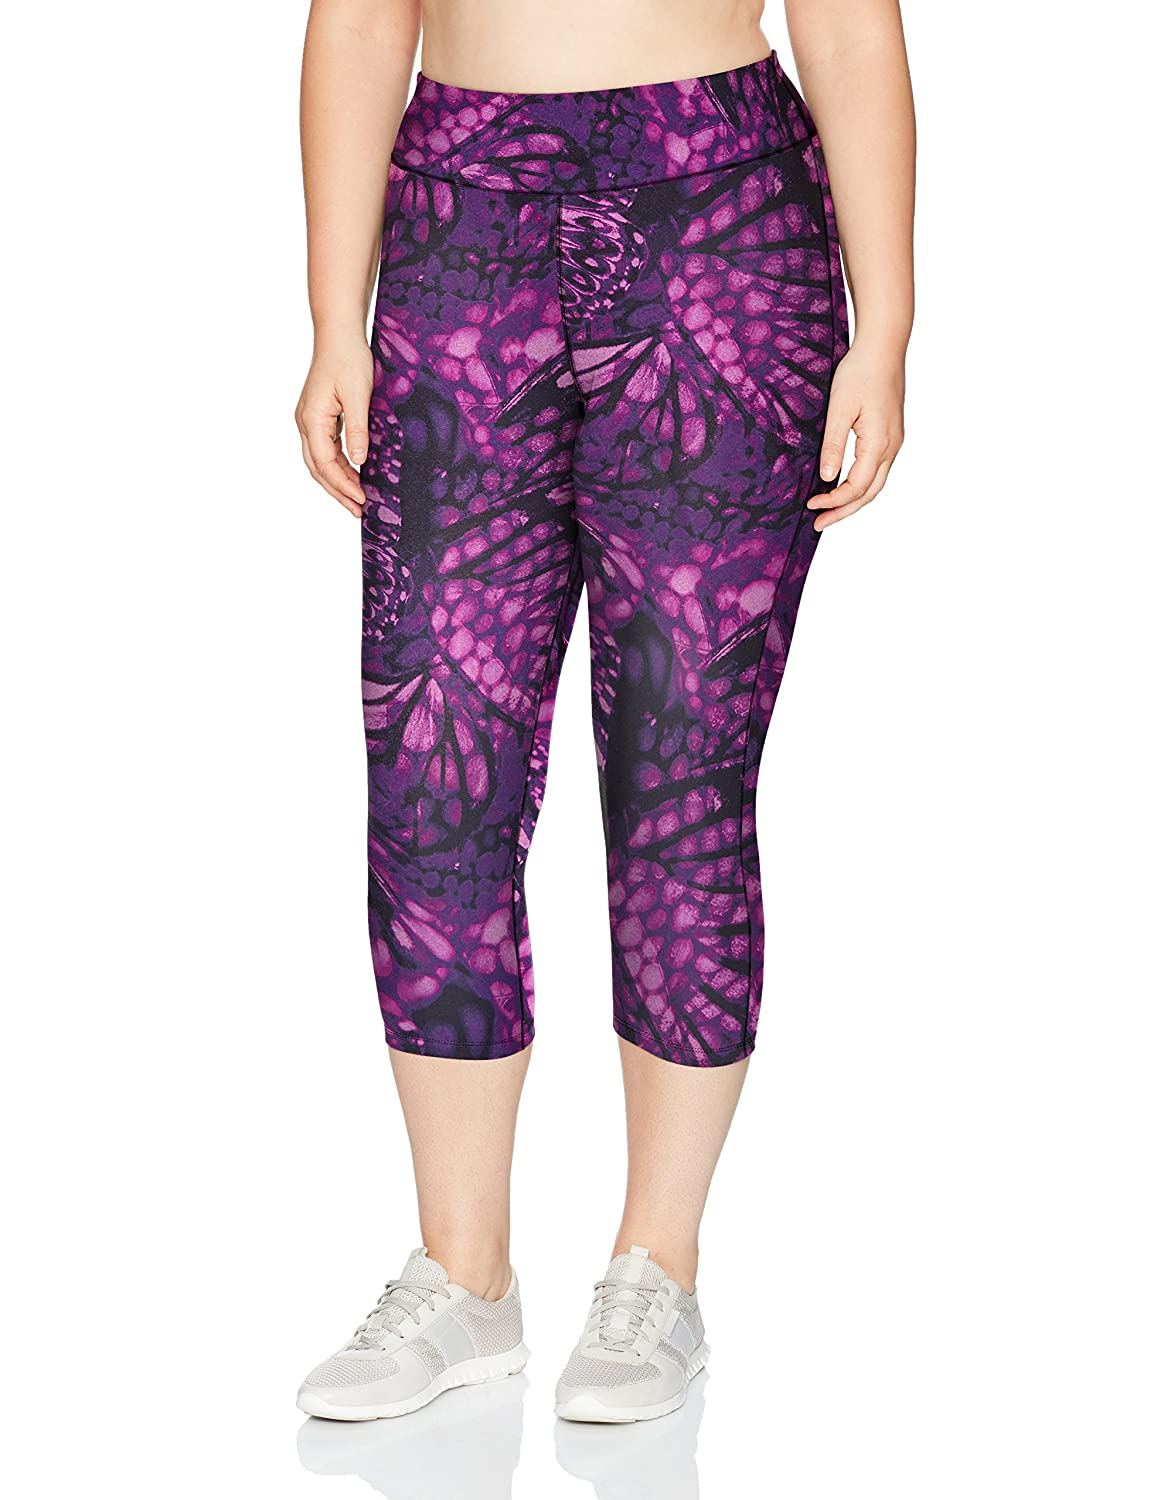 e9482005015ac Just My Size Women s Plus Size Active Stretch Capri at Amazon Women s  Clothing store